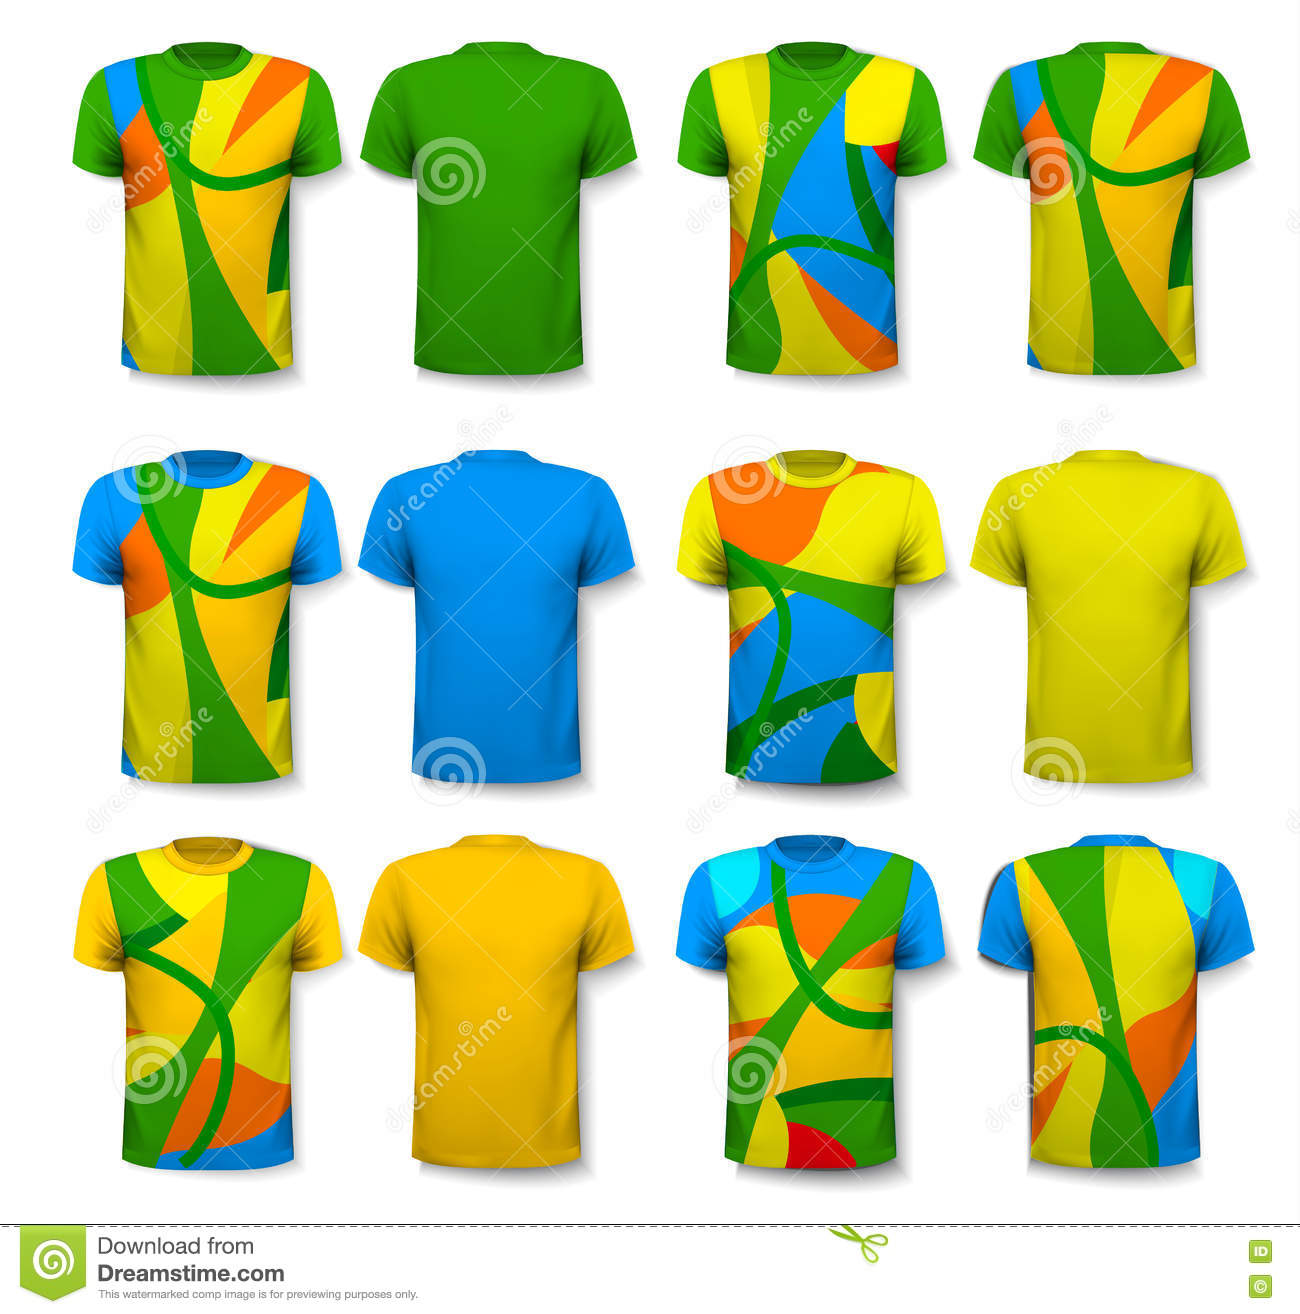 Design t shirt uniform - Colorful Abstract Male T Shirts Design Template Stock Image